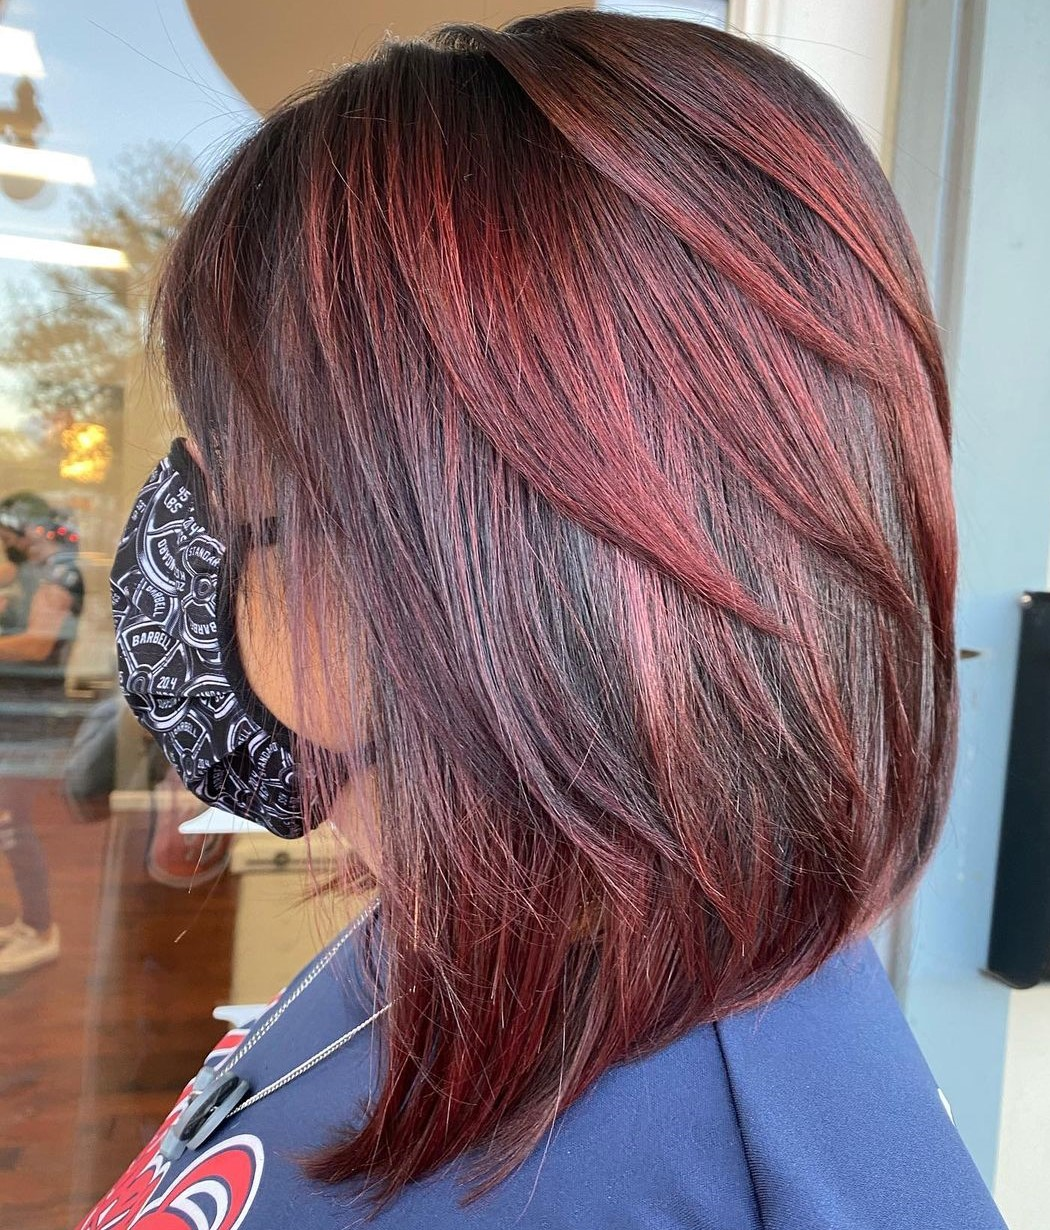 Dark Hair with Red Highlights for Women Over 50